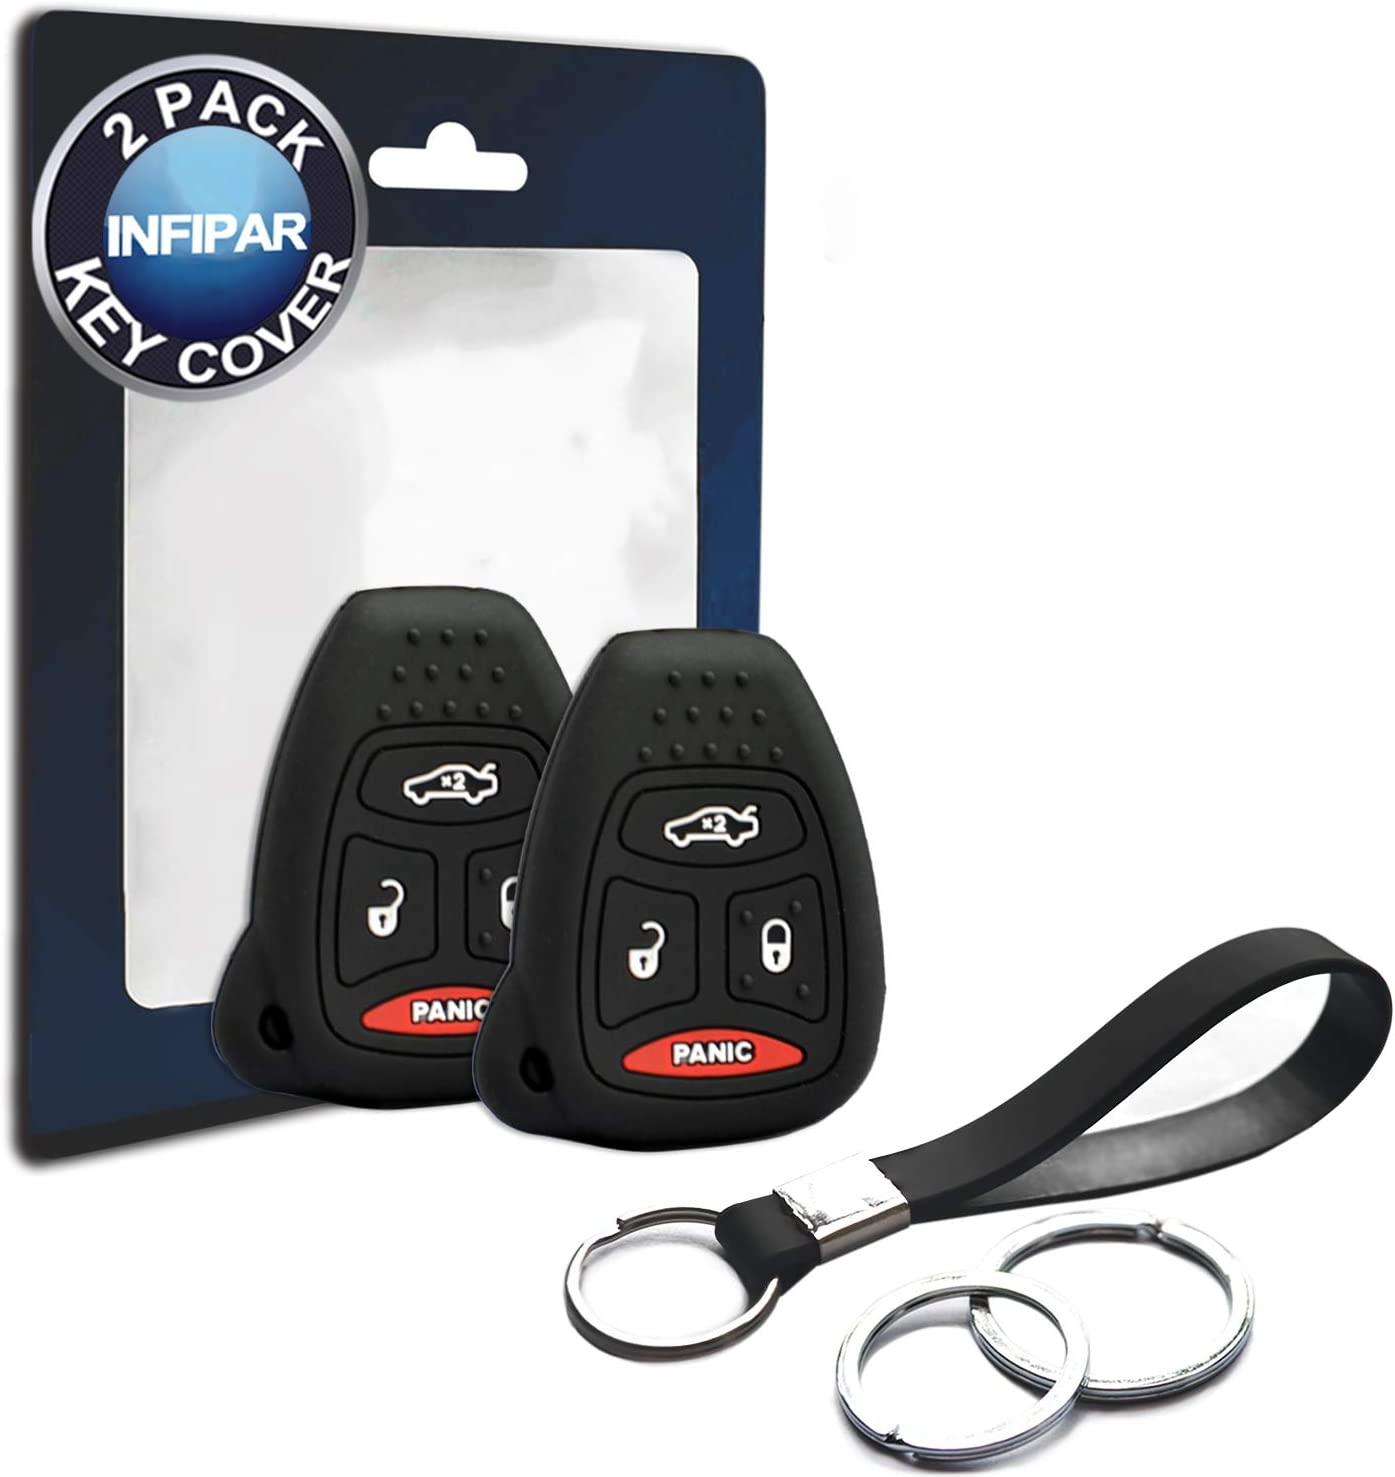 Chrysler 200 300 PT Cruiser Dodge Avenger Charger Durango Magnum 2pcs Silicone FOB Case Cover Protector Keyless Remote Head Holder Compatible with for 2005-2012 Jeep Commander Grand Cherokee Liberty